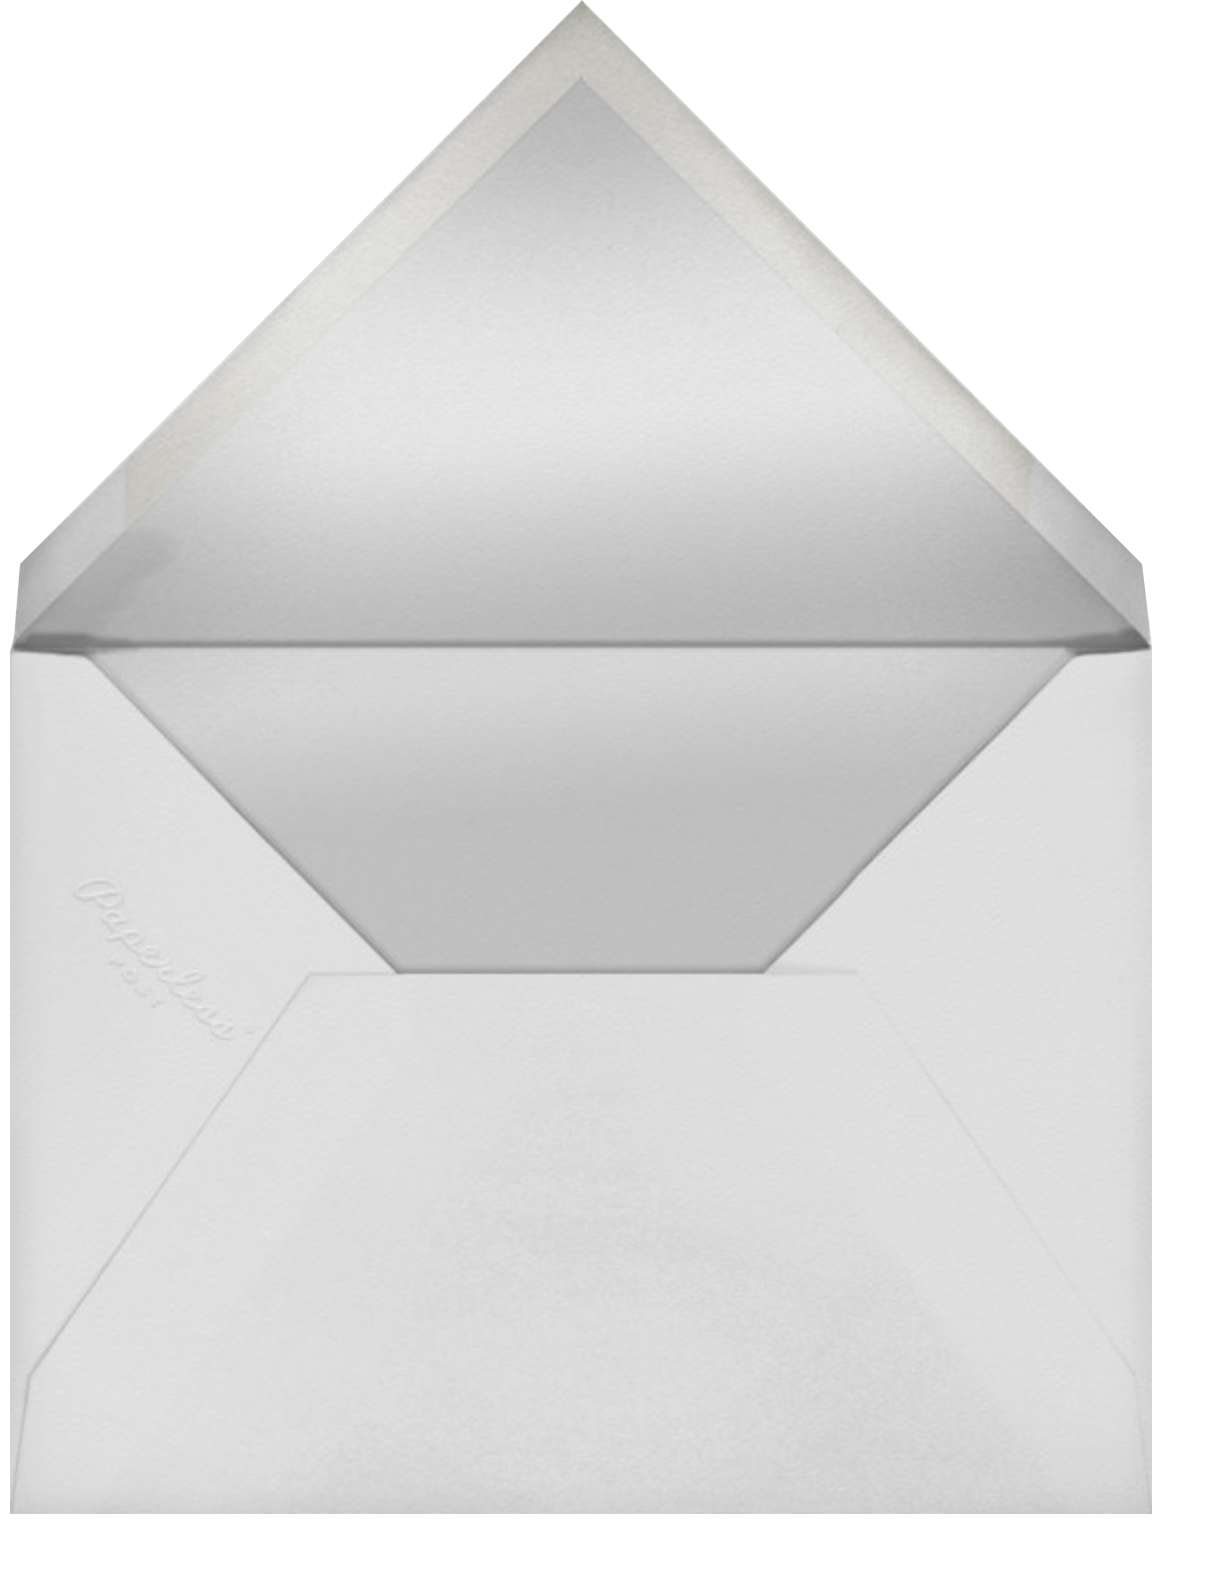 Sports Balls - Paperless Post - Father's Day - envelope back